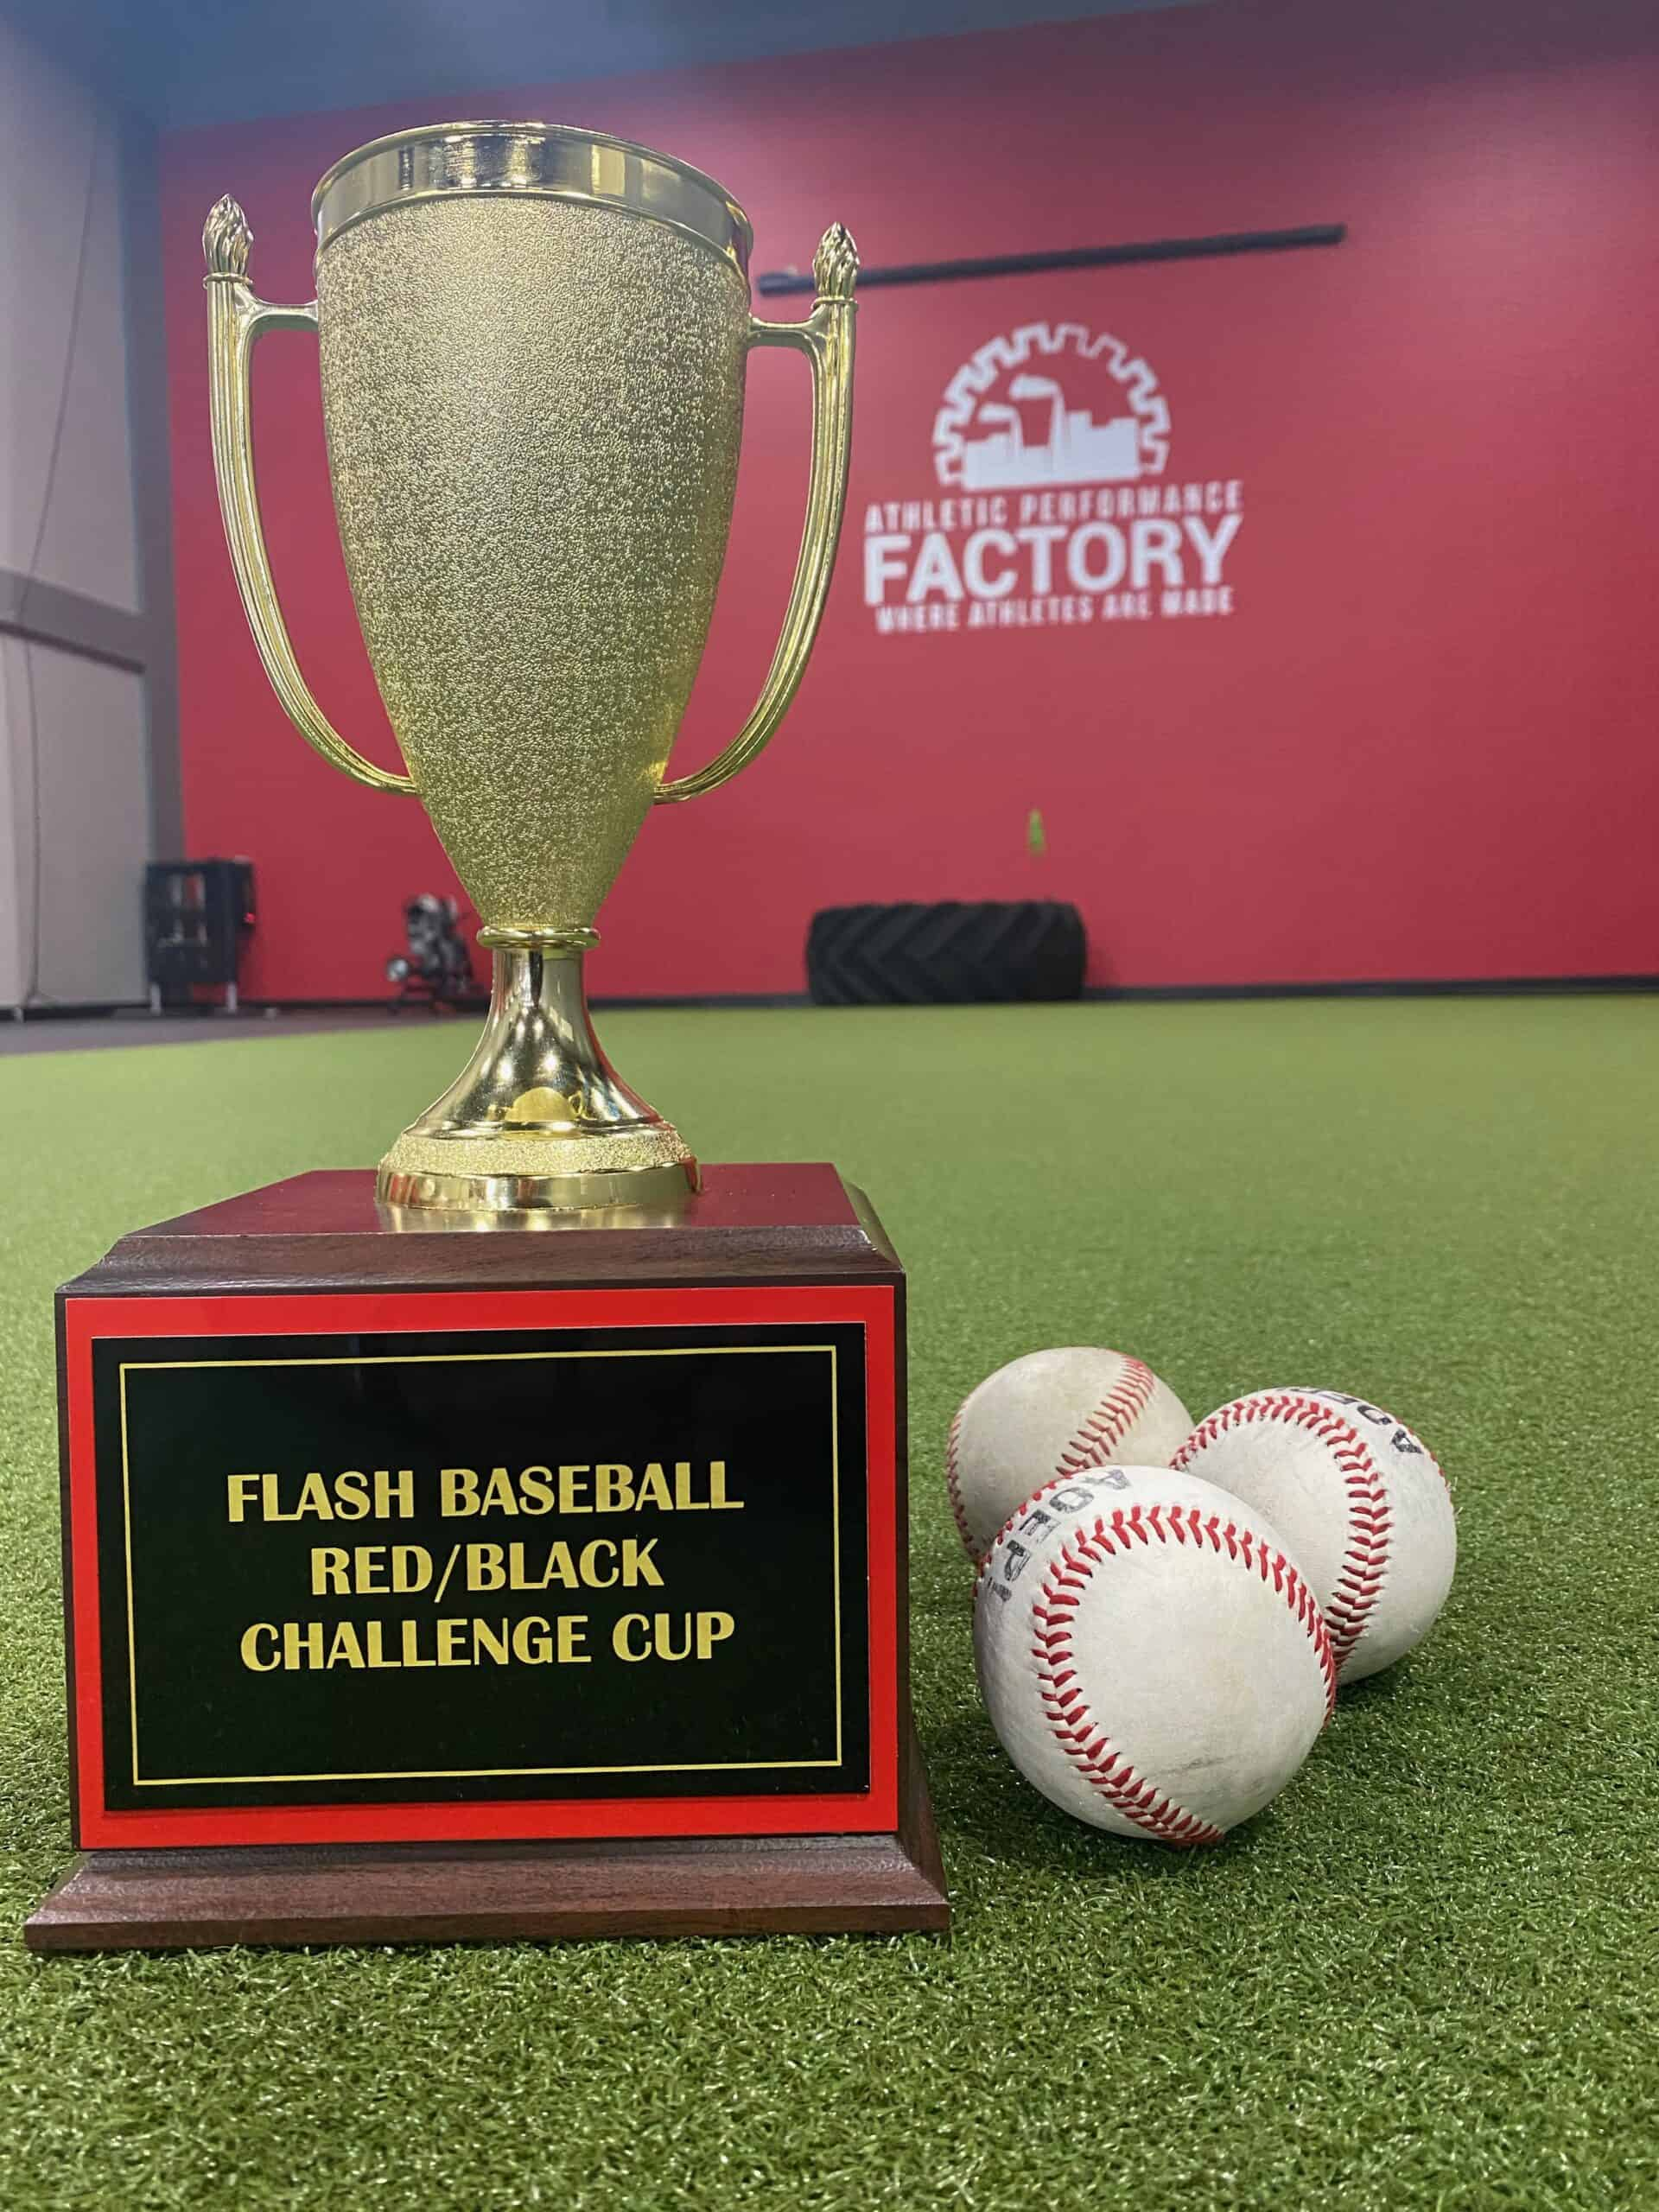 Gold cup Flash baseball Red/Black Challenge cup trophy next to baseballs